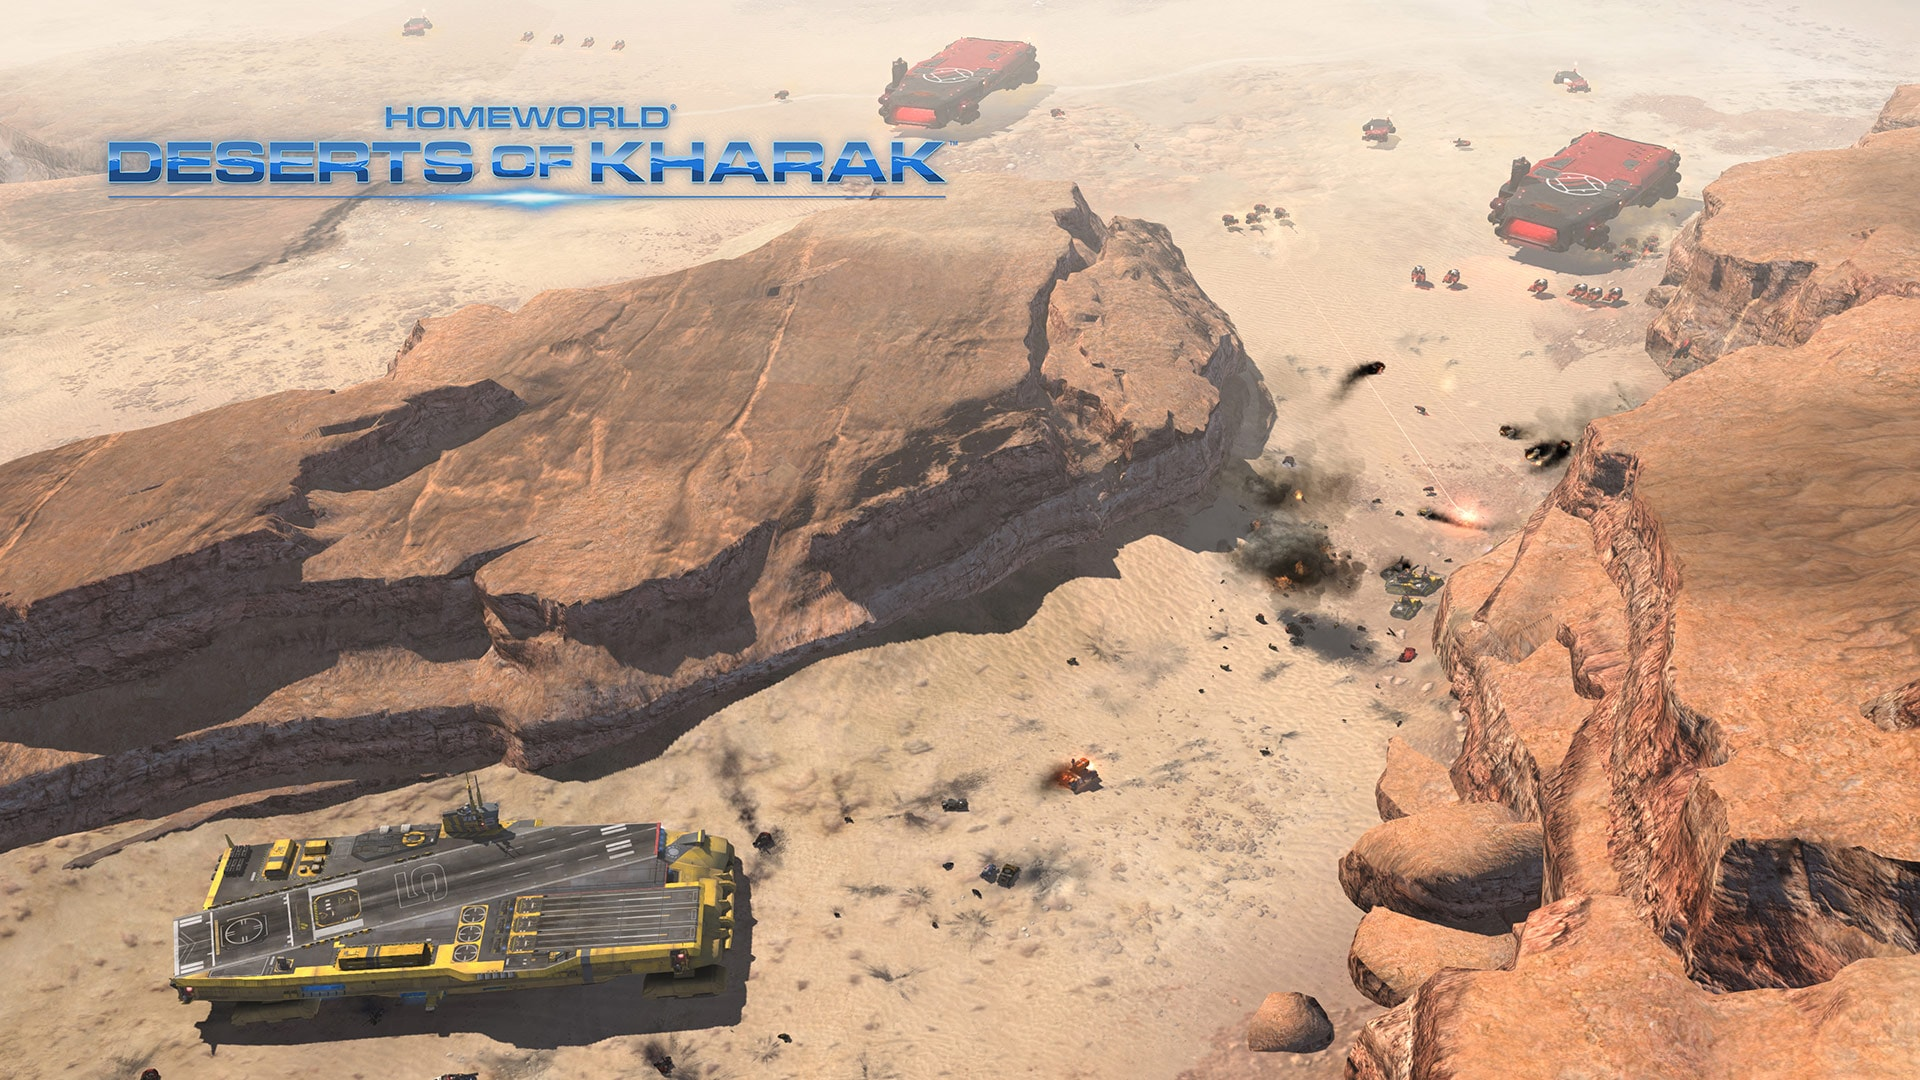 Homeworld: Deserts of Kharak Background